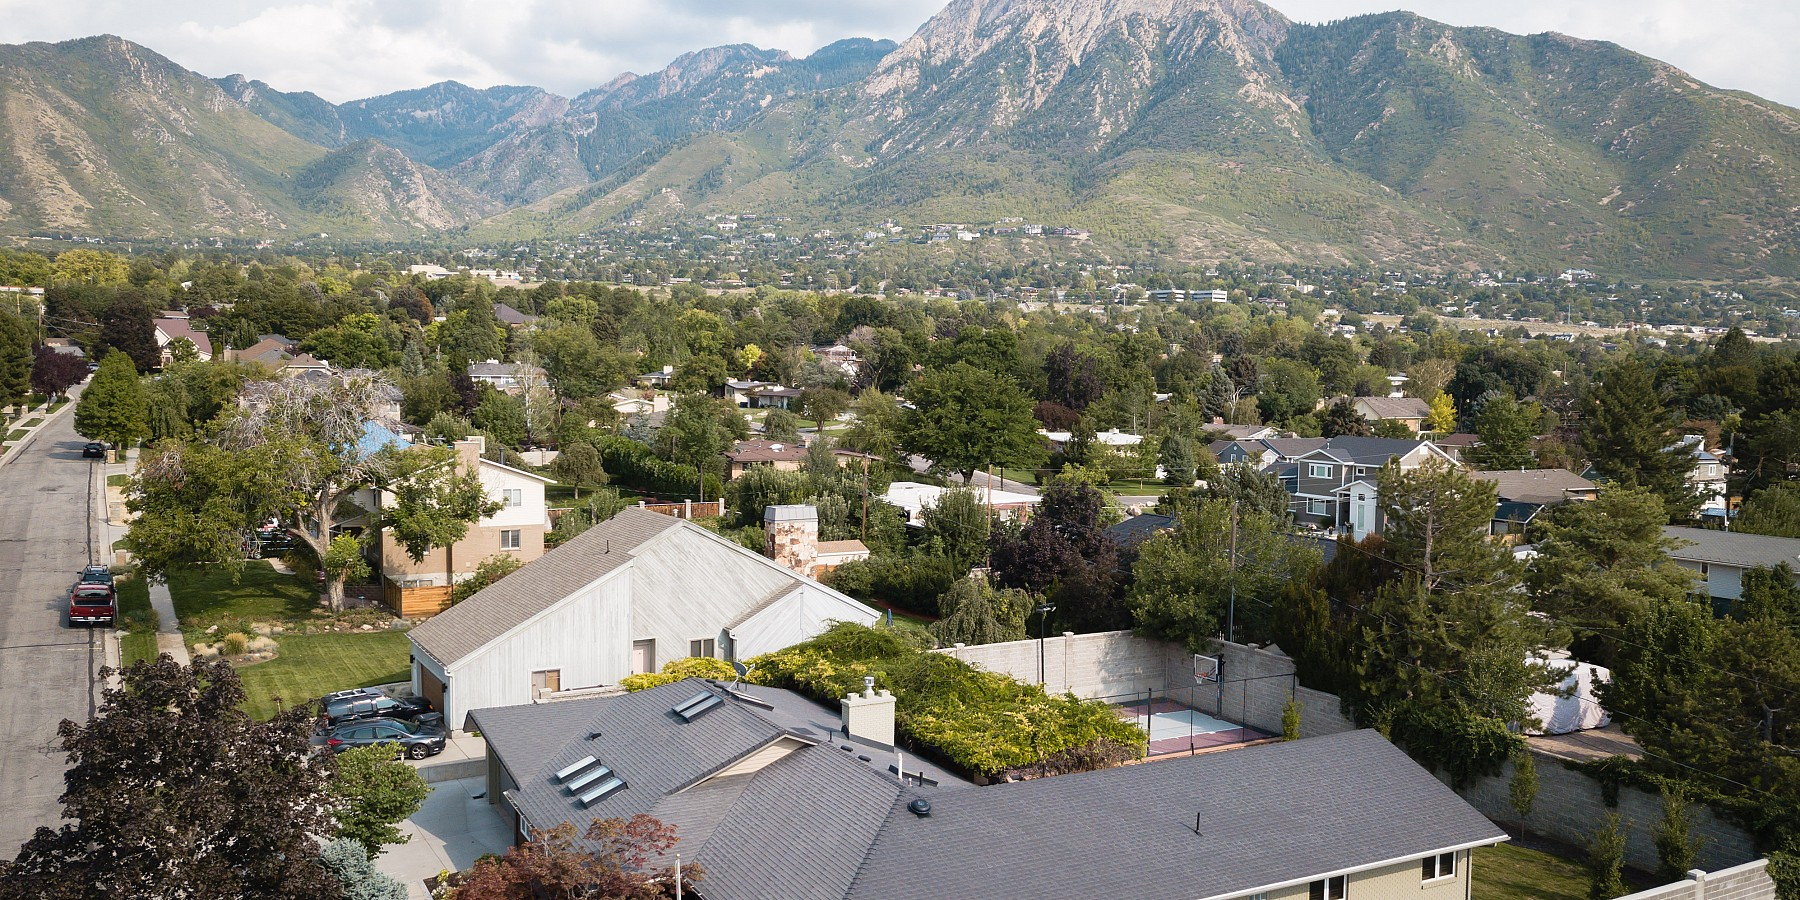 2750 East 4215 South, Holladay, UT 84124